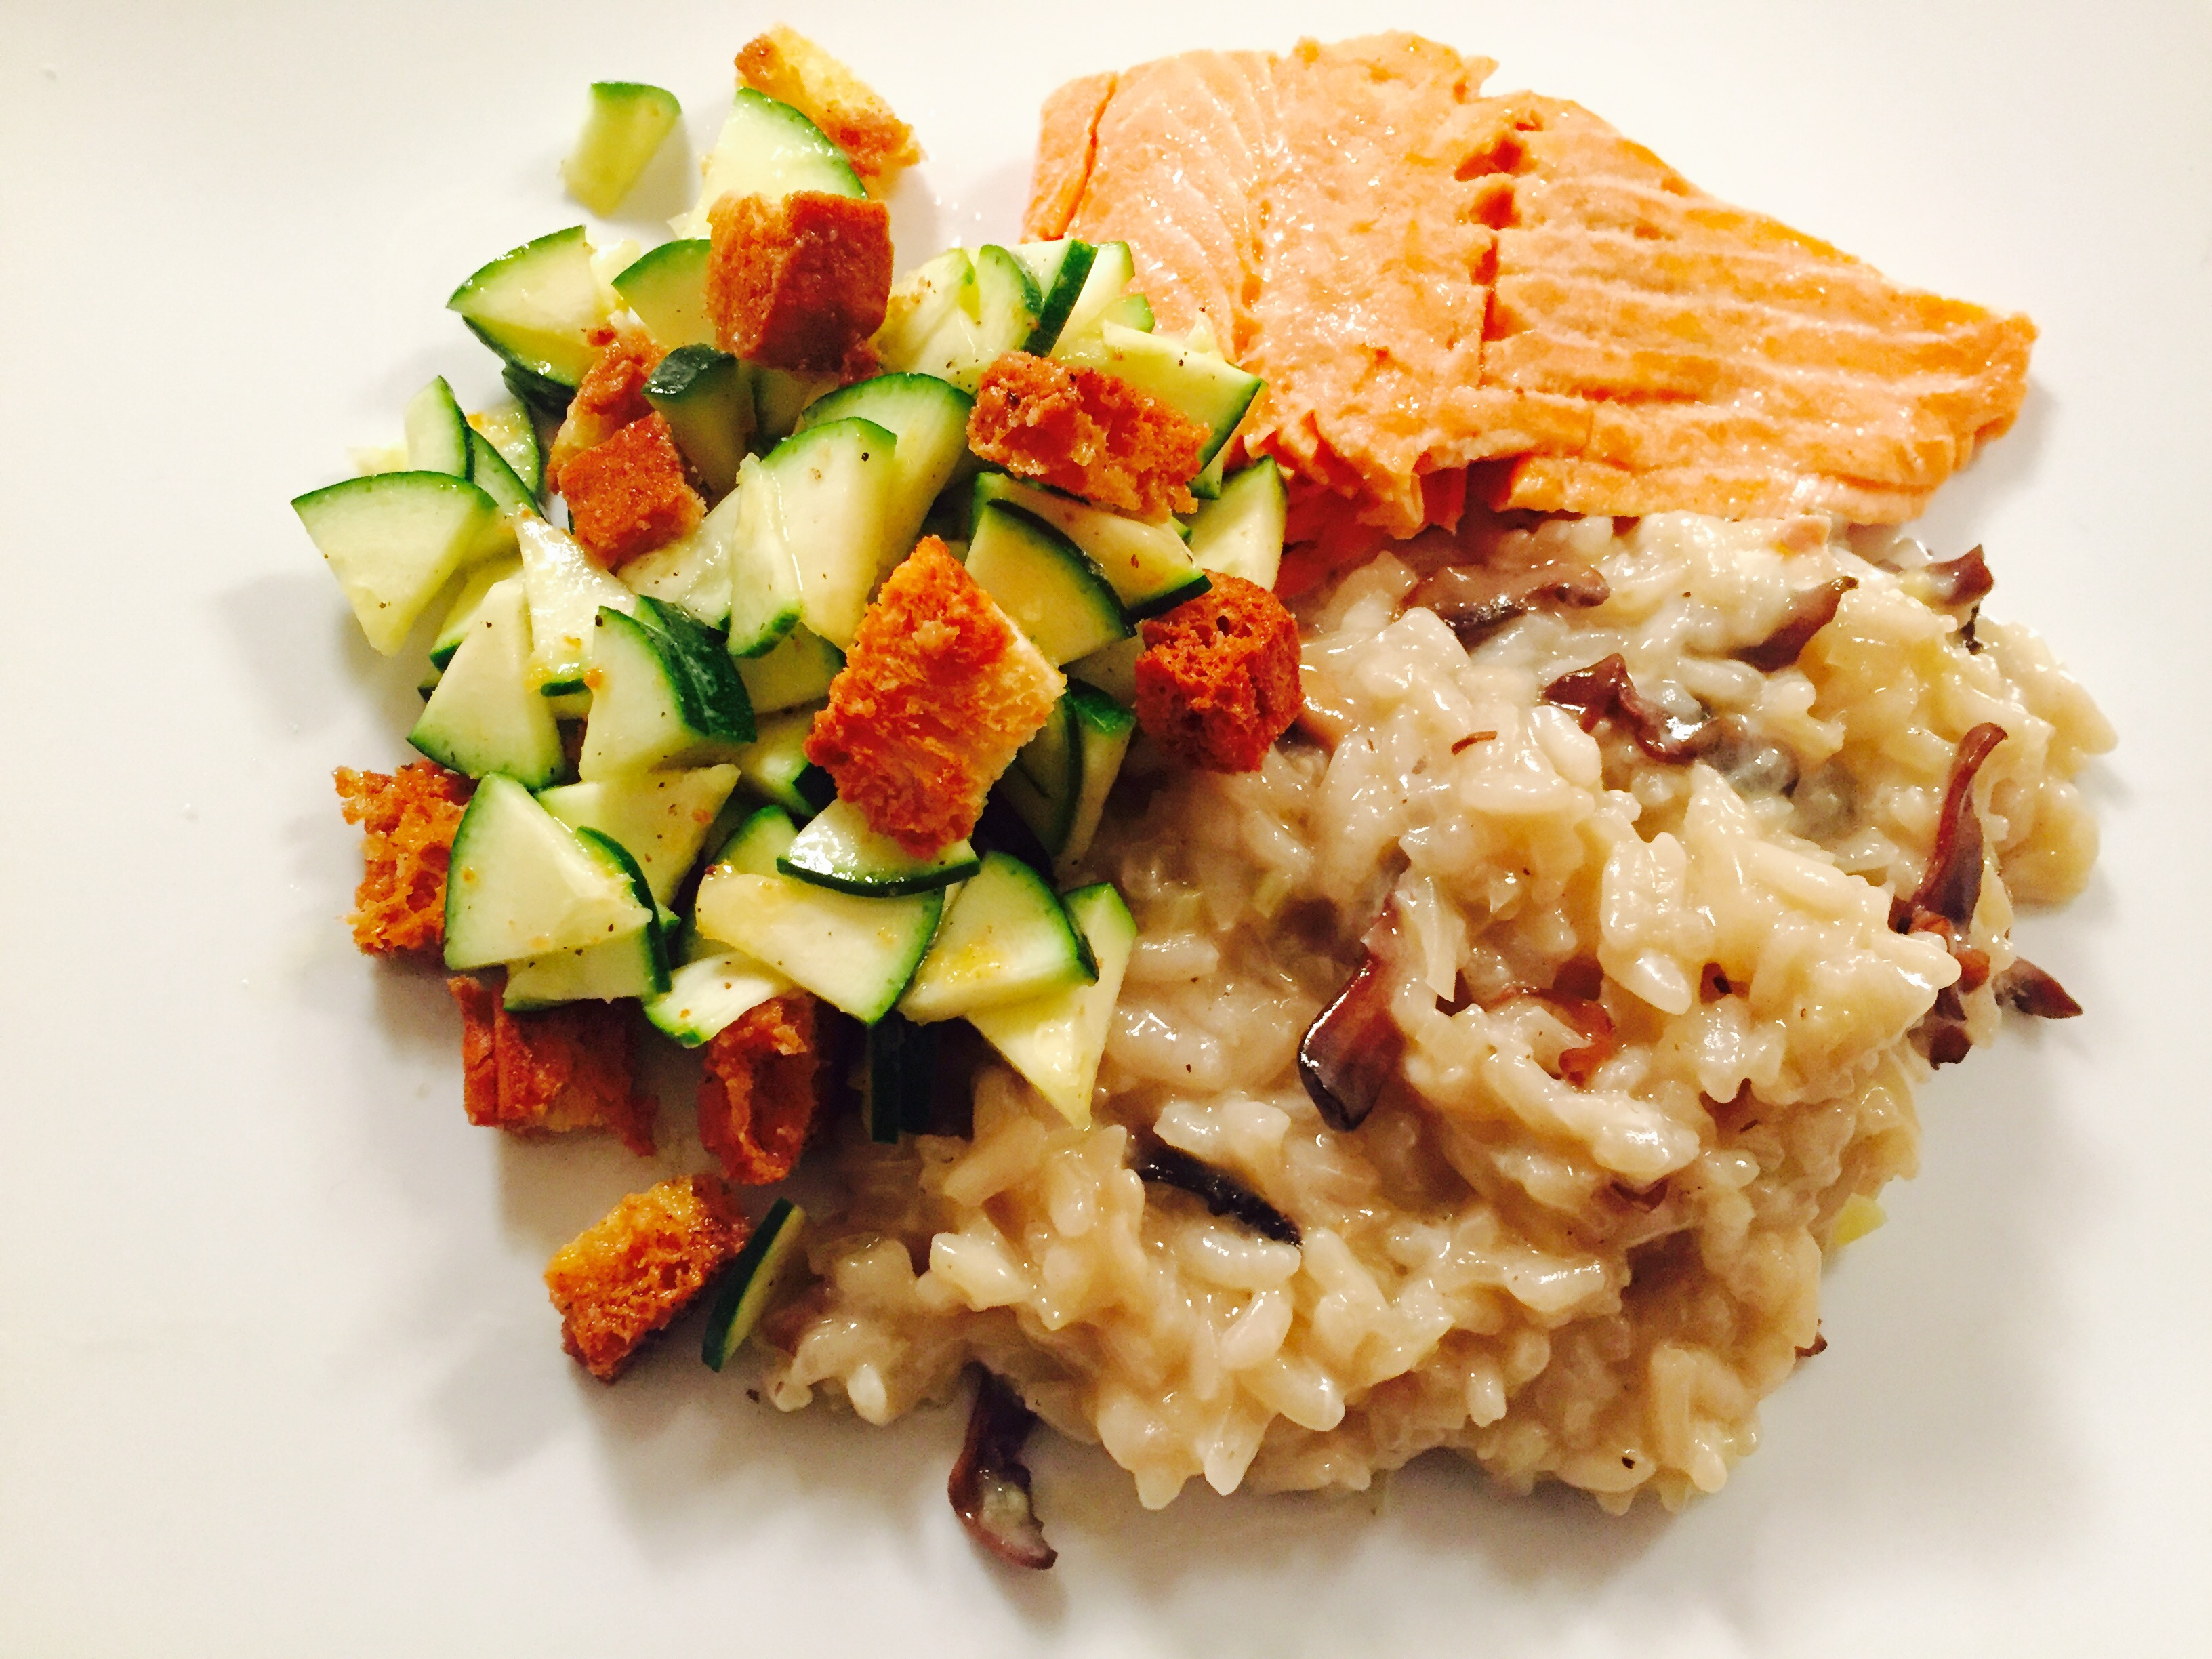 Poached Trout with Mushroom Risotto and Zucchini Salad